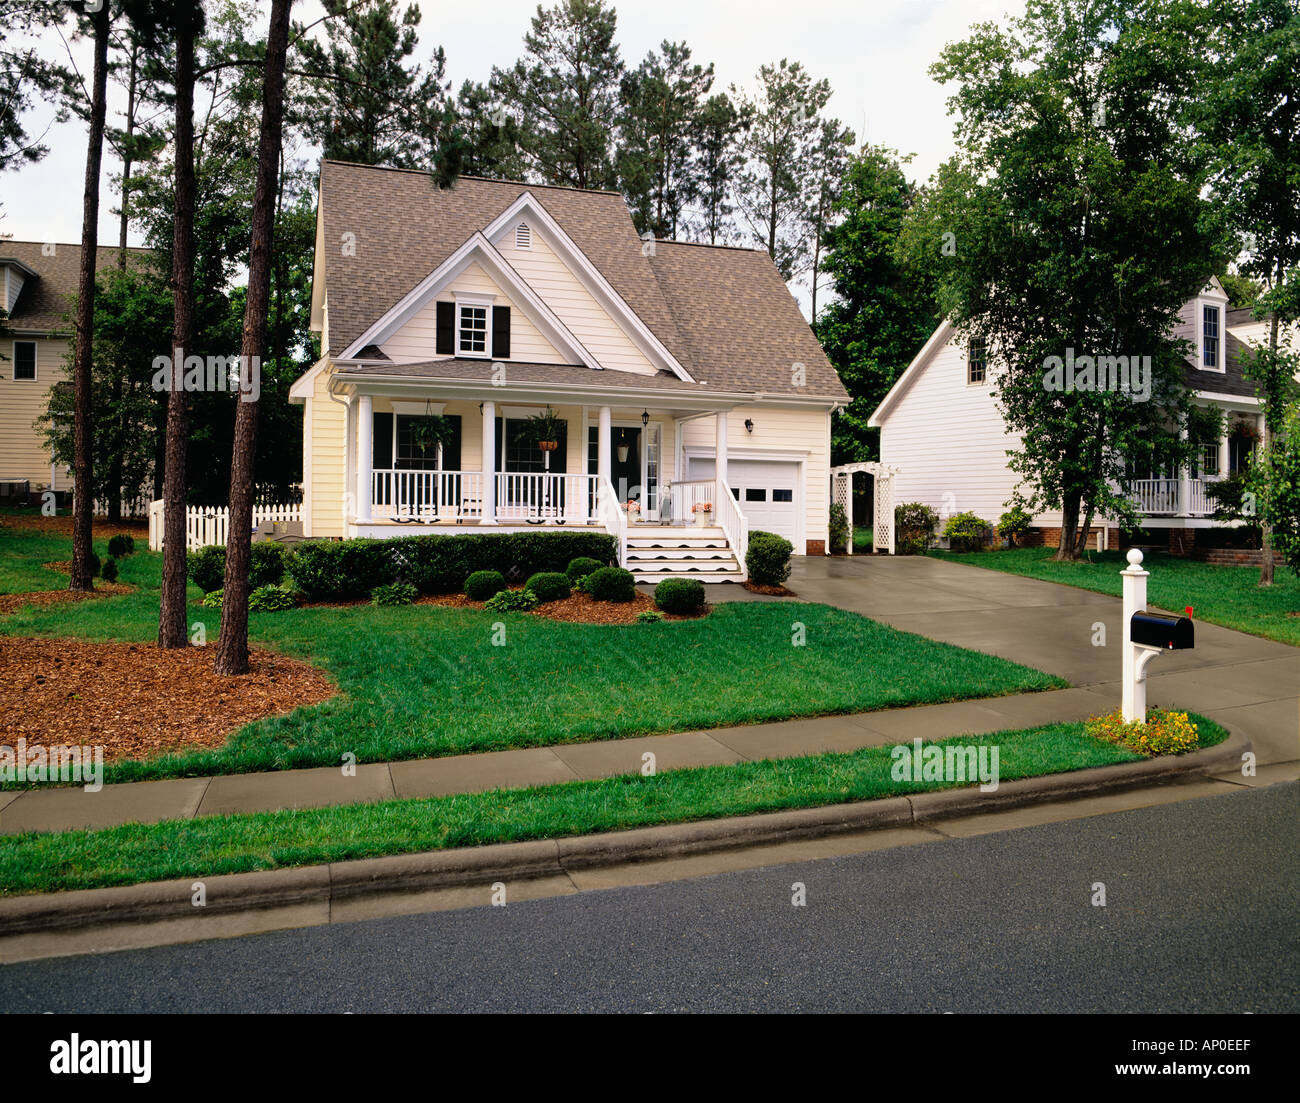 Small Two Story Cream House With Black Shutters White Trim